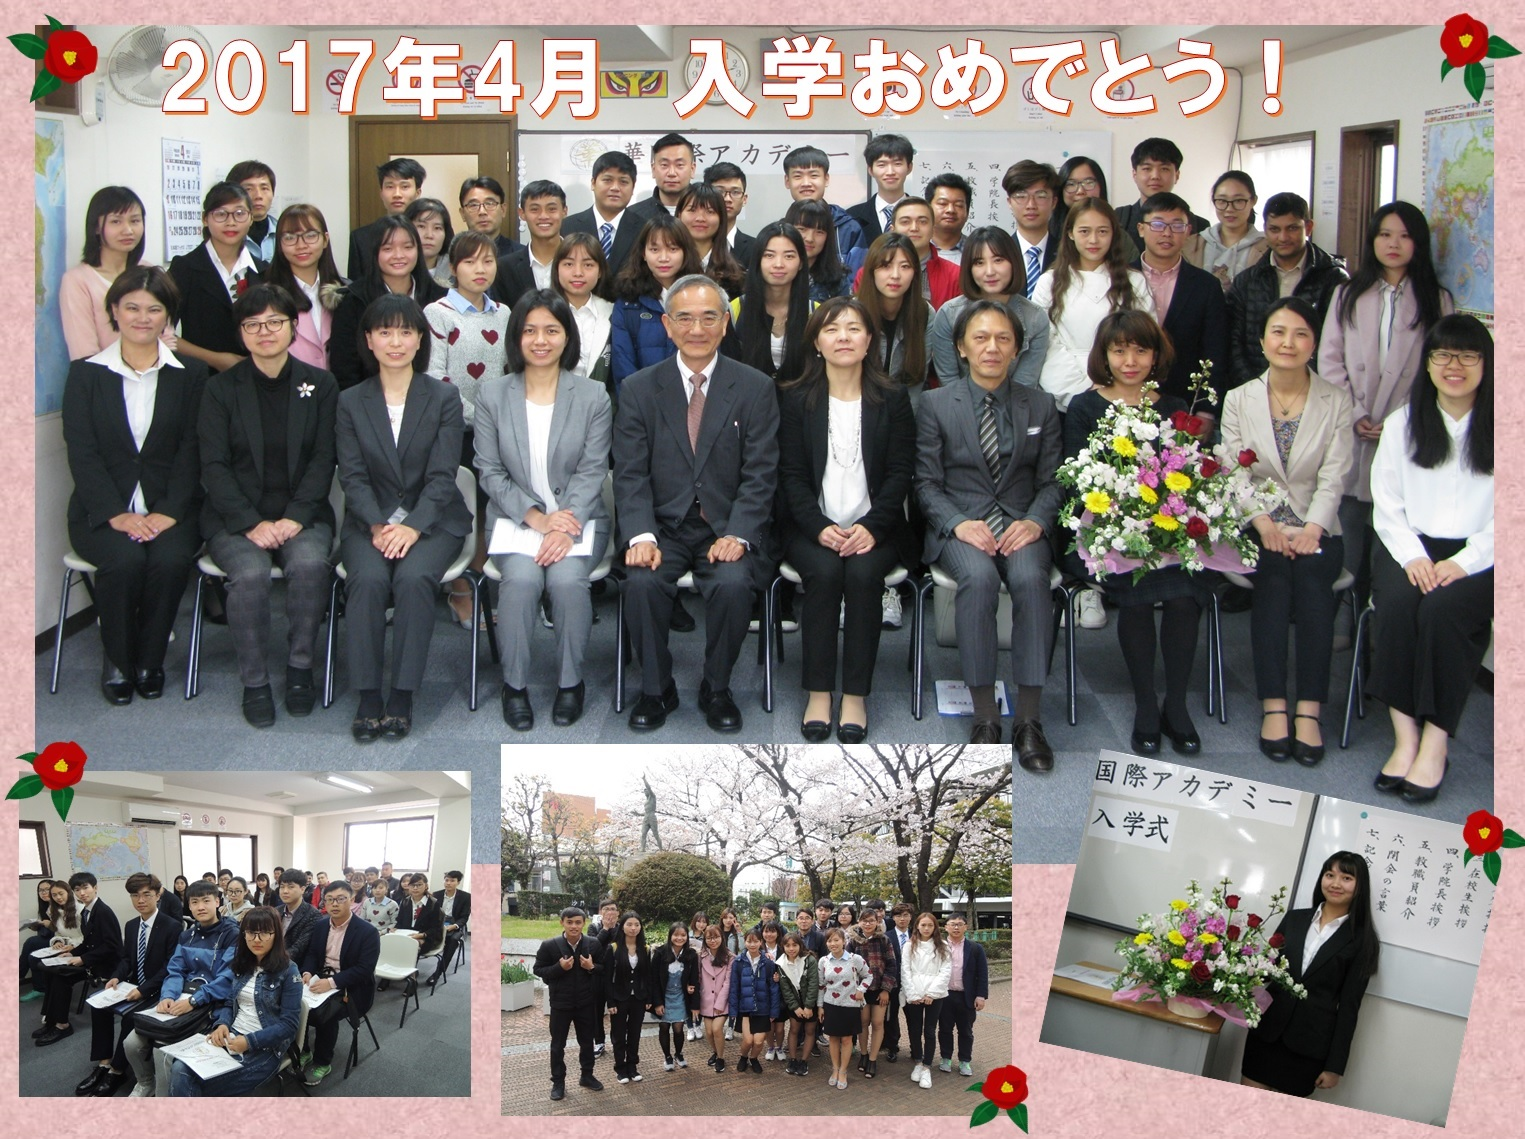 2017/04 2017年4月生入学 New student entered a school in April 2017.